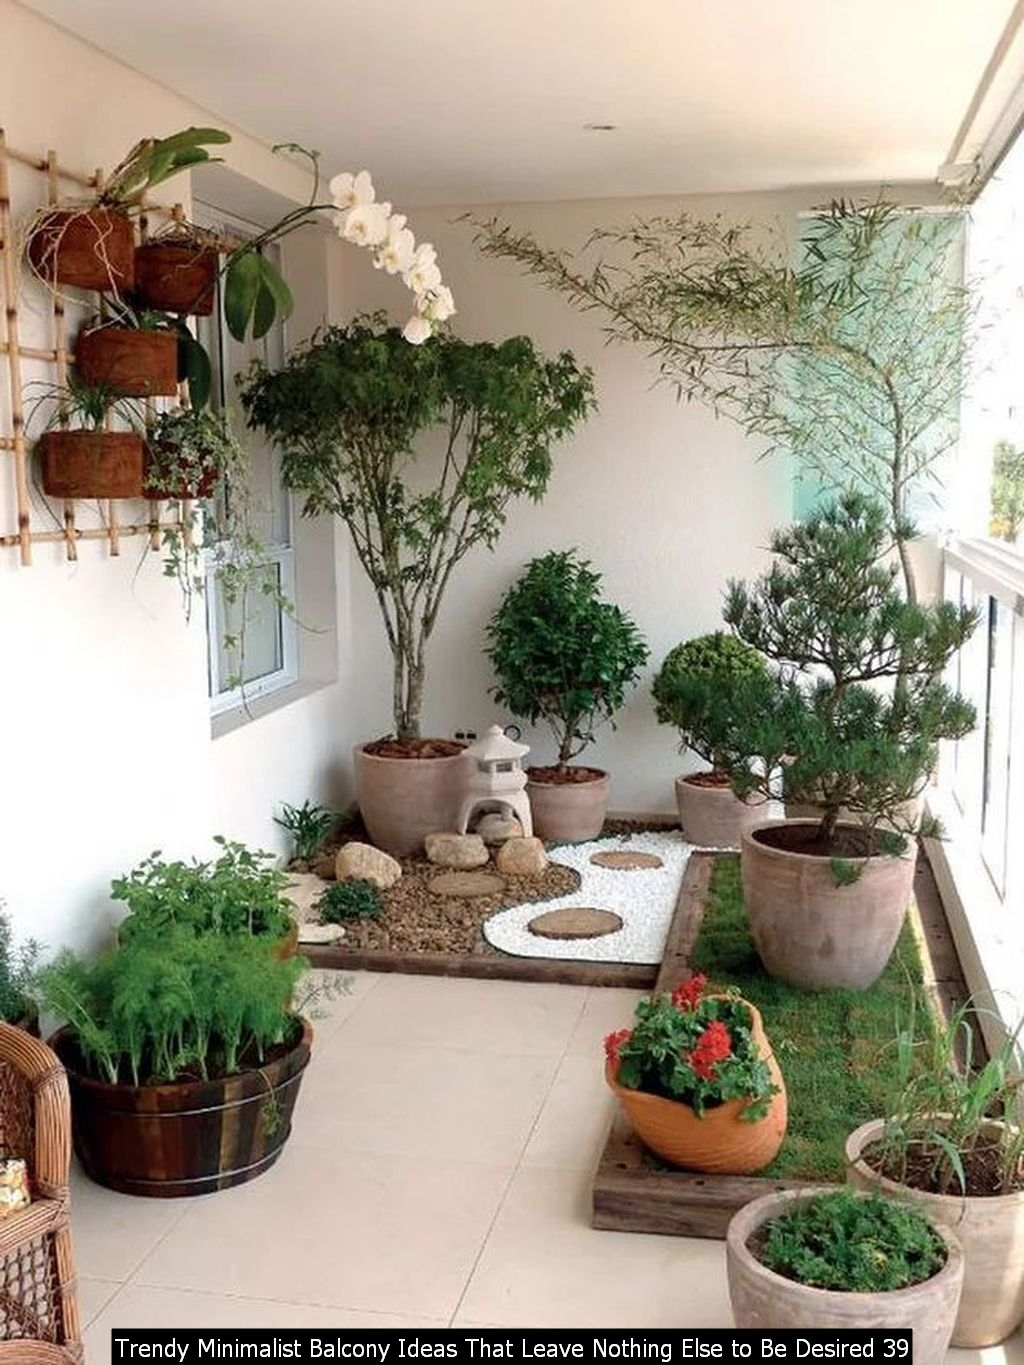 Trendy Minimalist Balcony Ideas That Leave Nothing Else To Be Desired 39